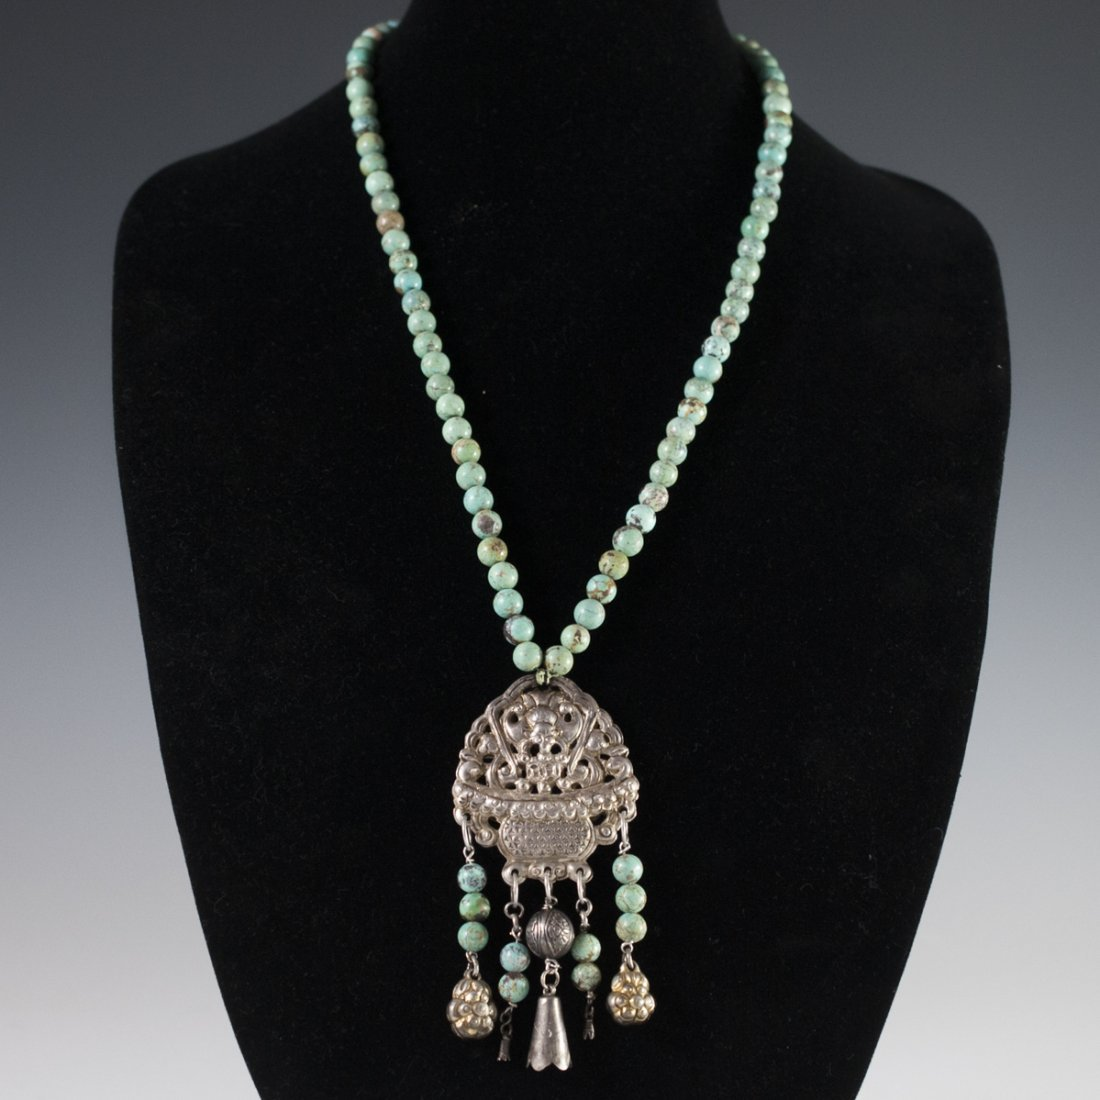 Antique Chinese Silver & Turquoise Necklace